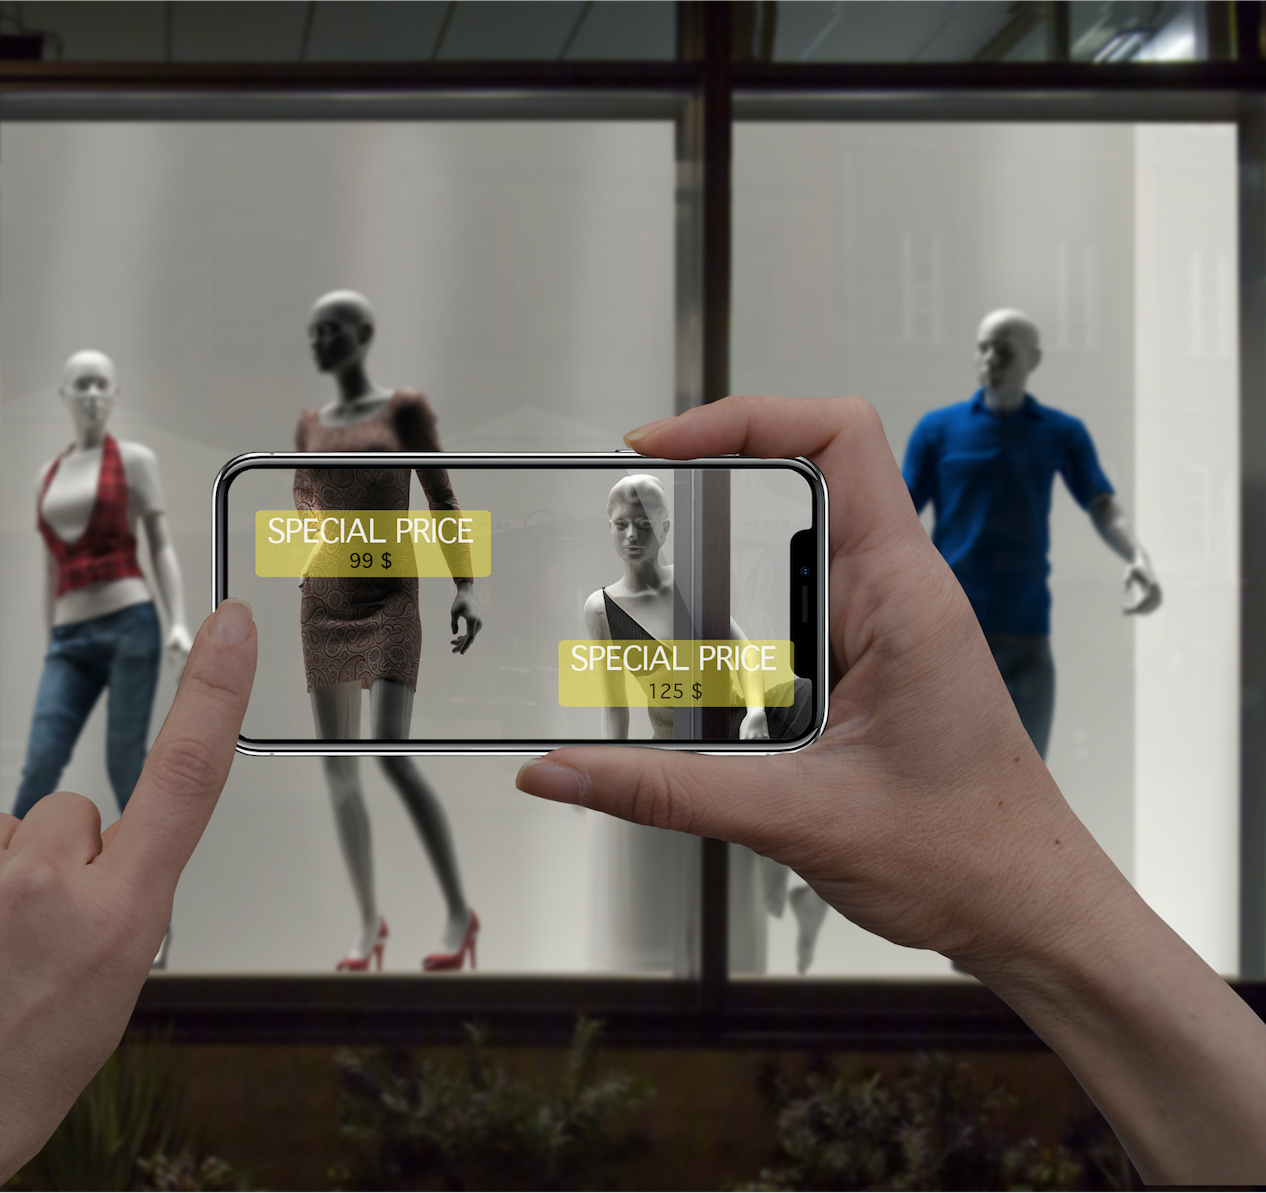 AR and VR Retail is here